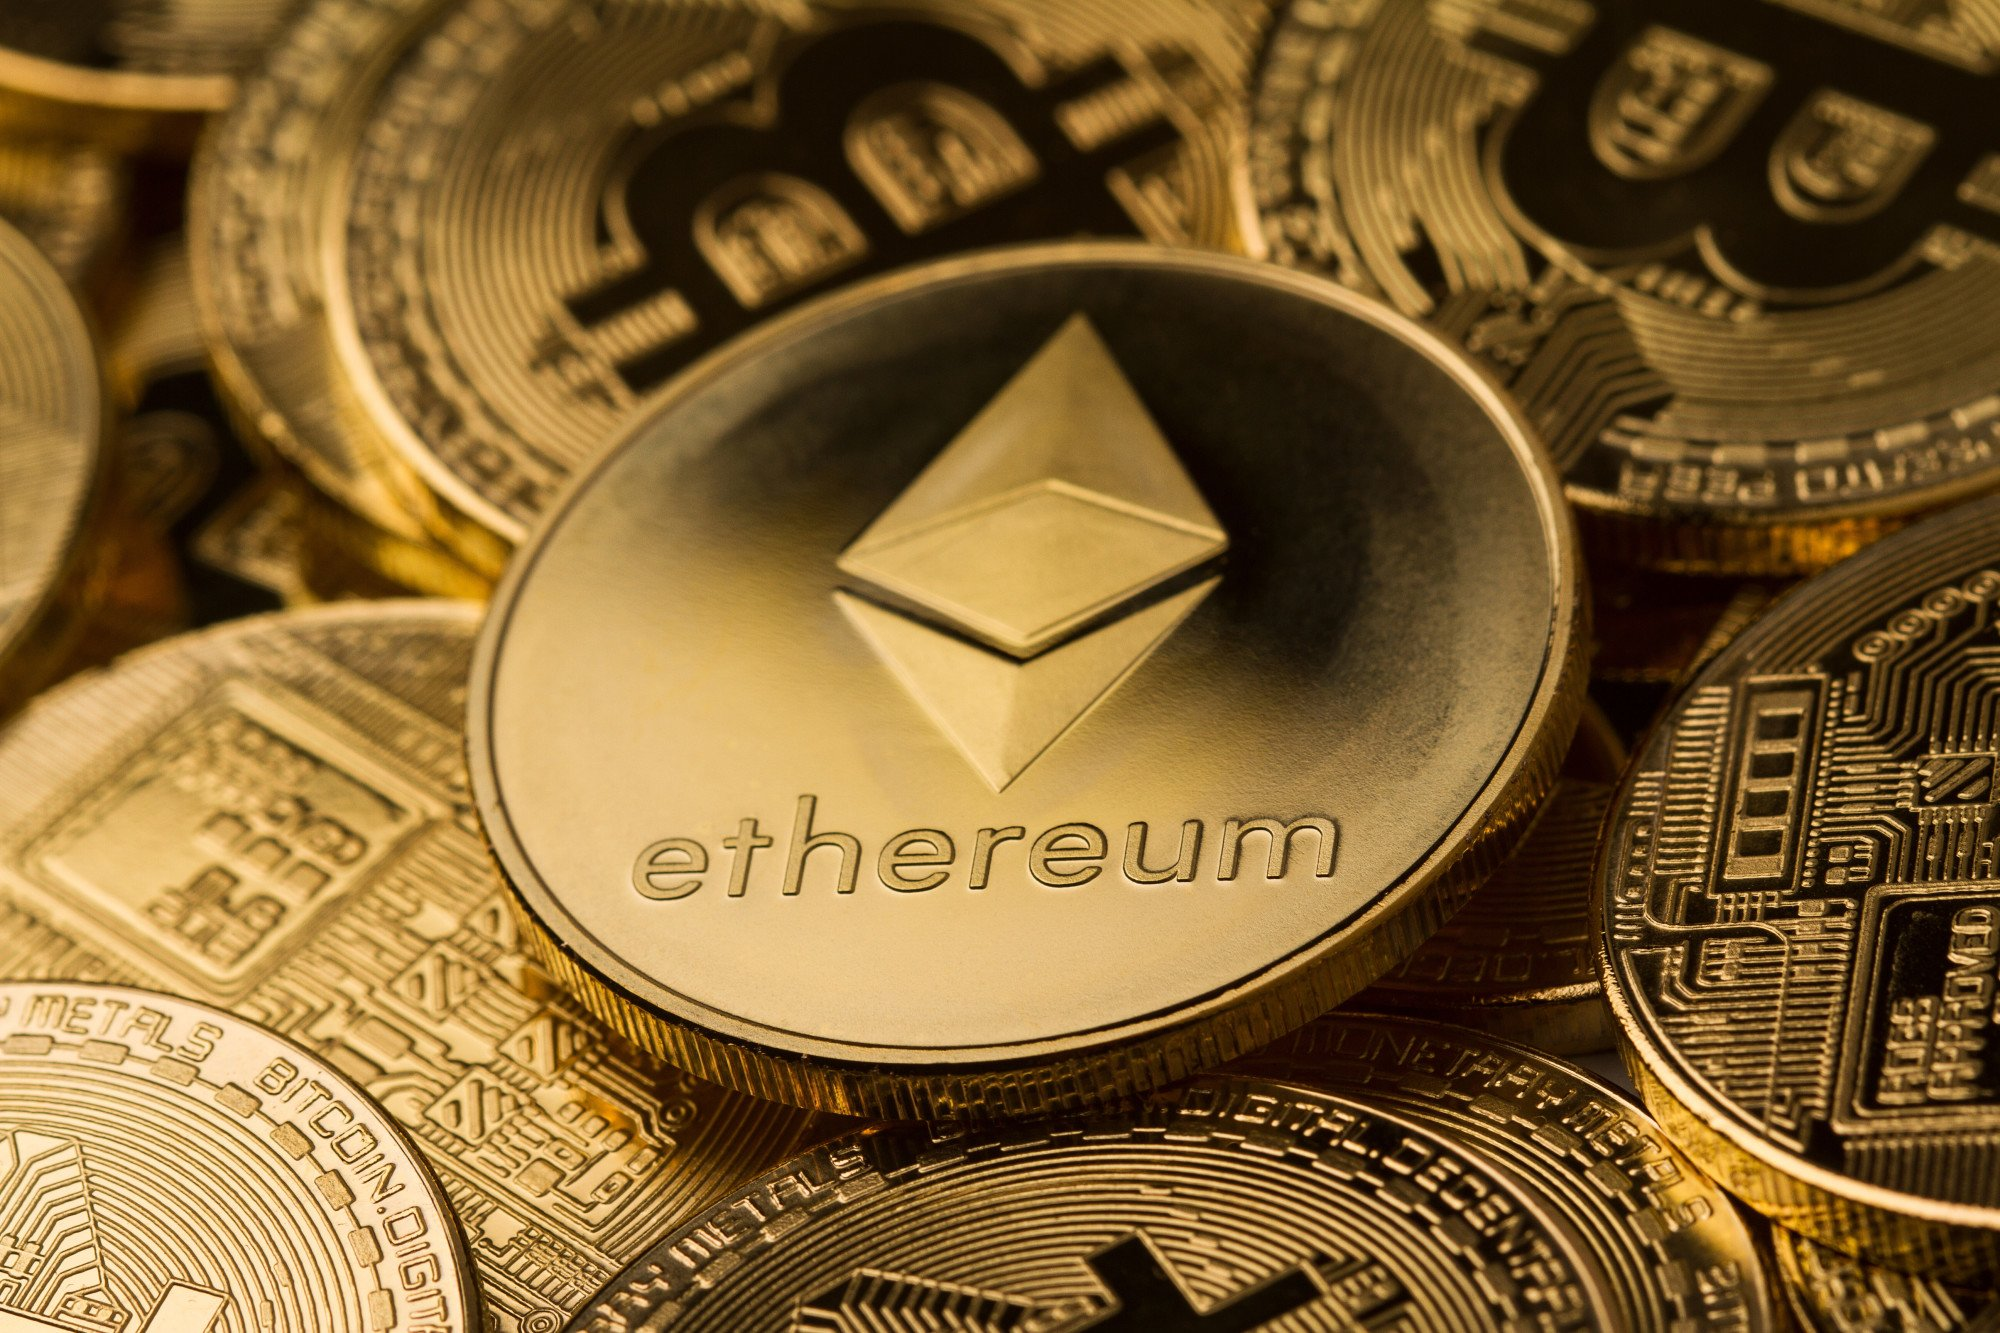 What Is Ethereum? A Guide On Buying Ethereum In Australia